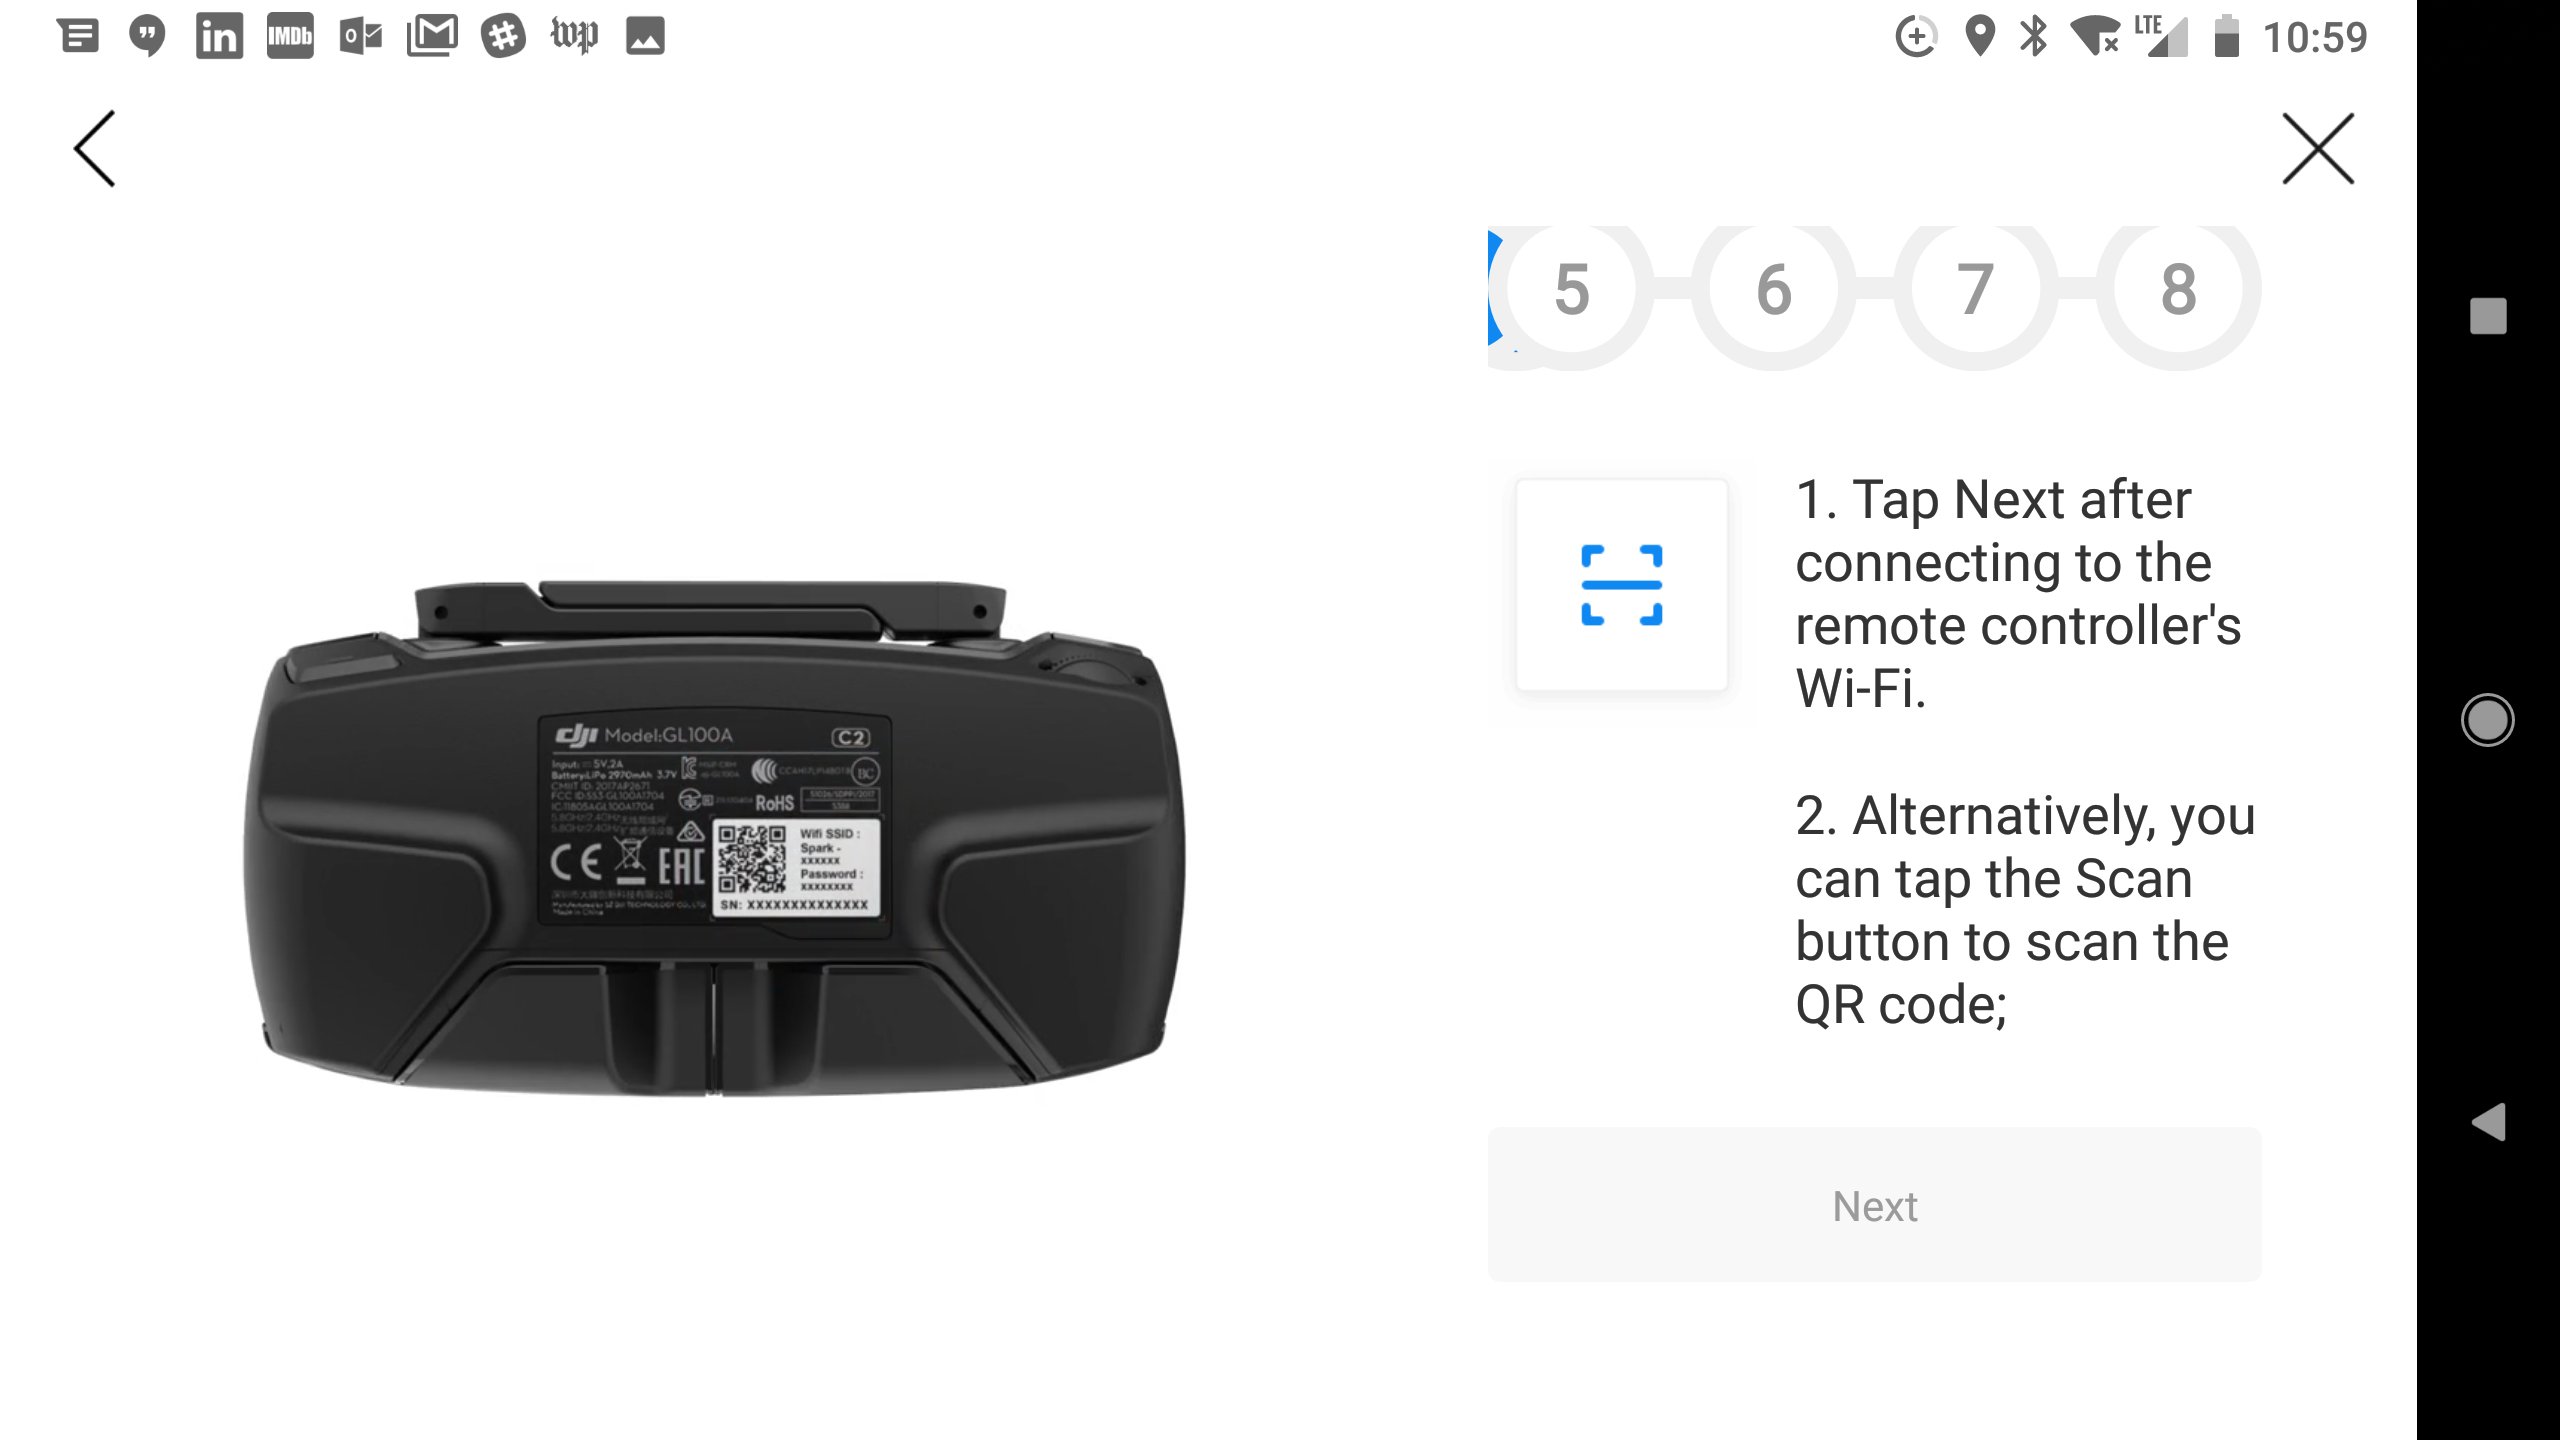 Too many steps to connect DJI Spark and Controller | DJI FORUM